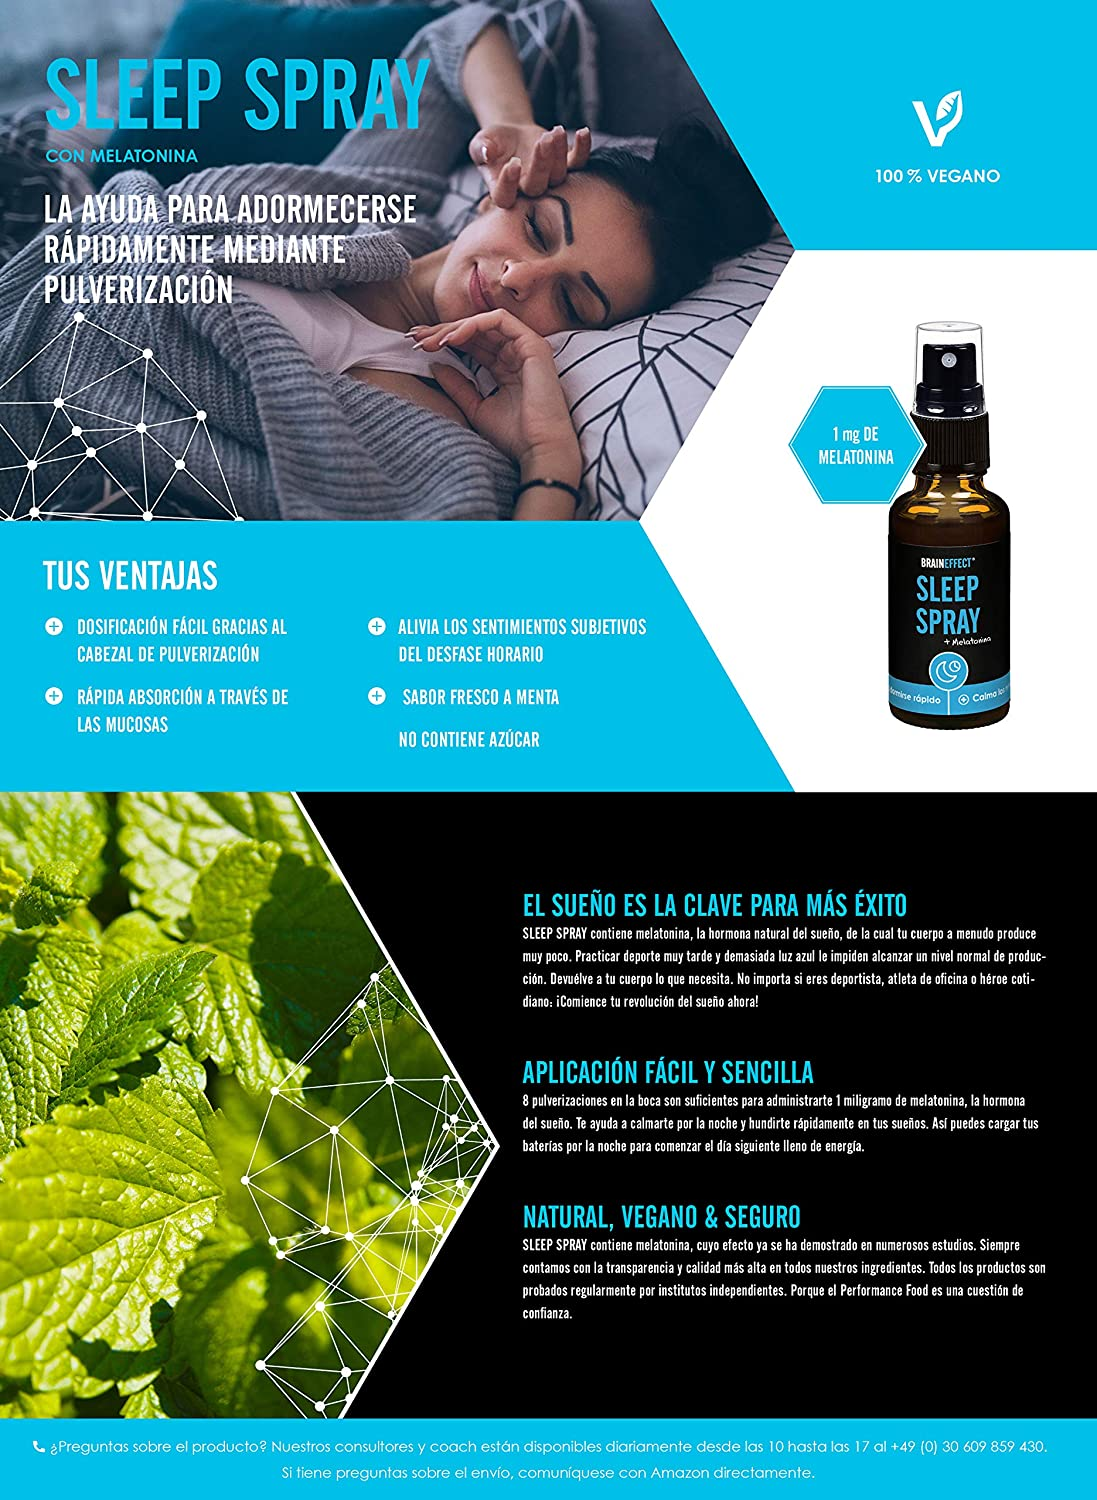 BRAINEFFECT SLEEP SPRAY | 1mg Melatonina por porción | 30ml | La más rapida ayuda natural para dormir | Vegano | Hecho en Alemania: Amazon.es: Salud y ...